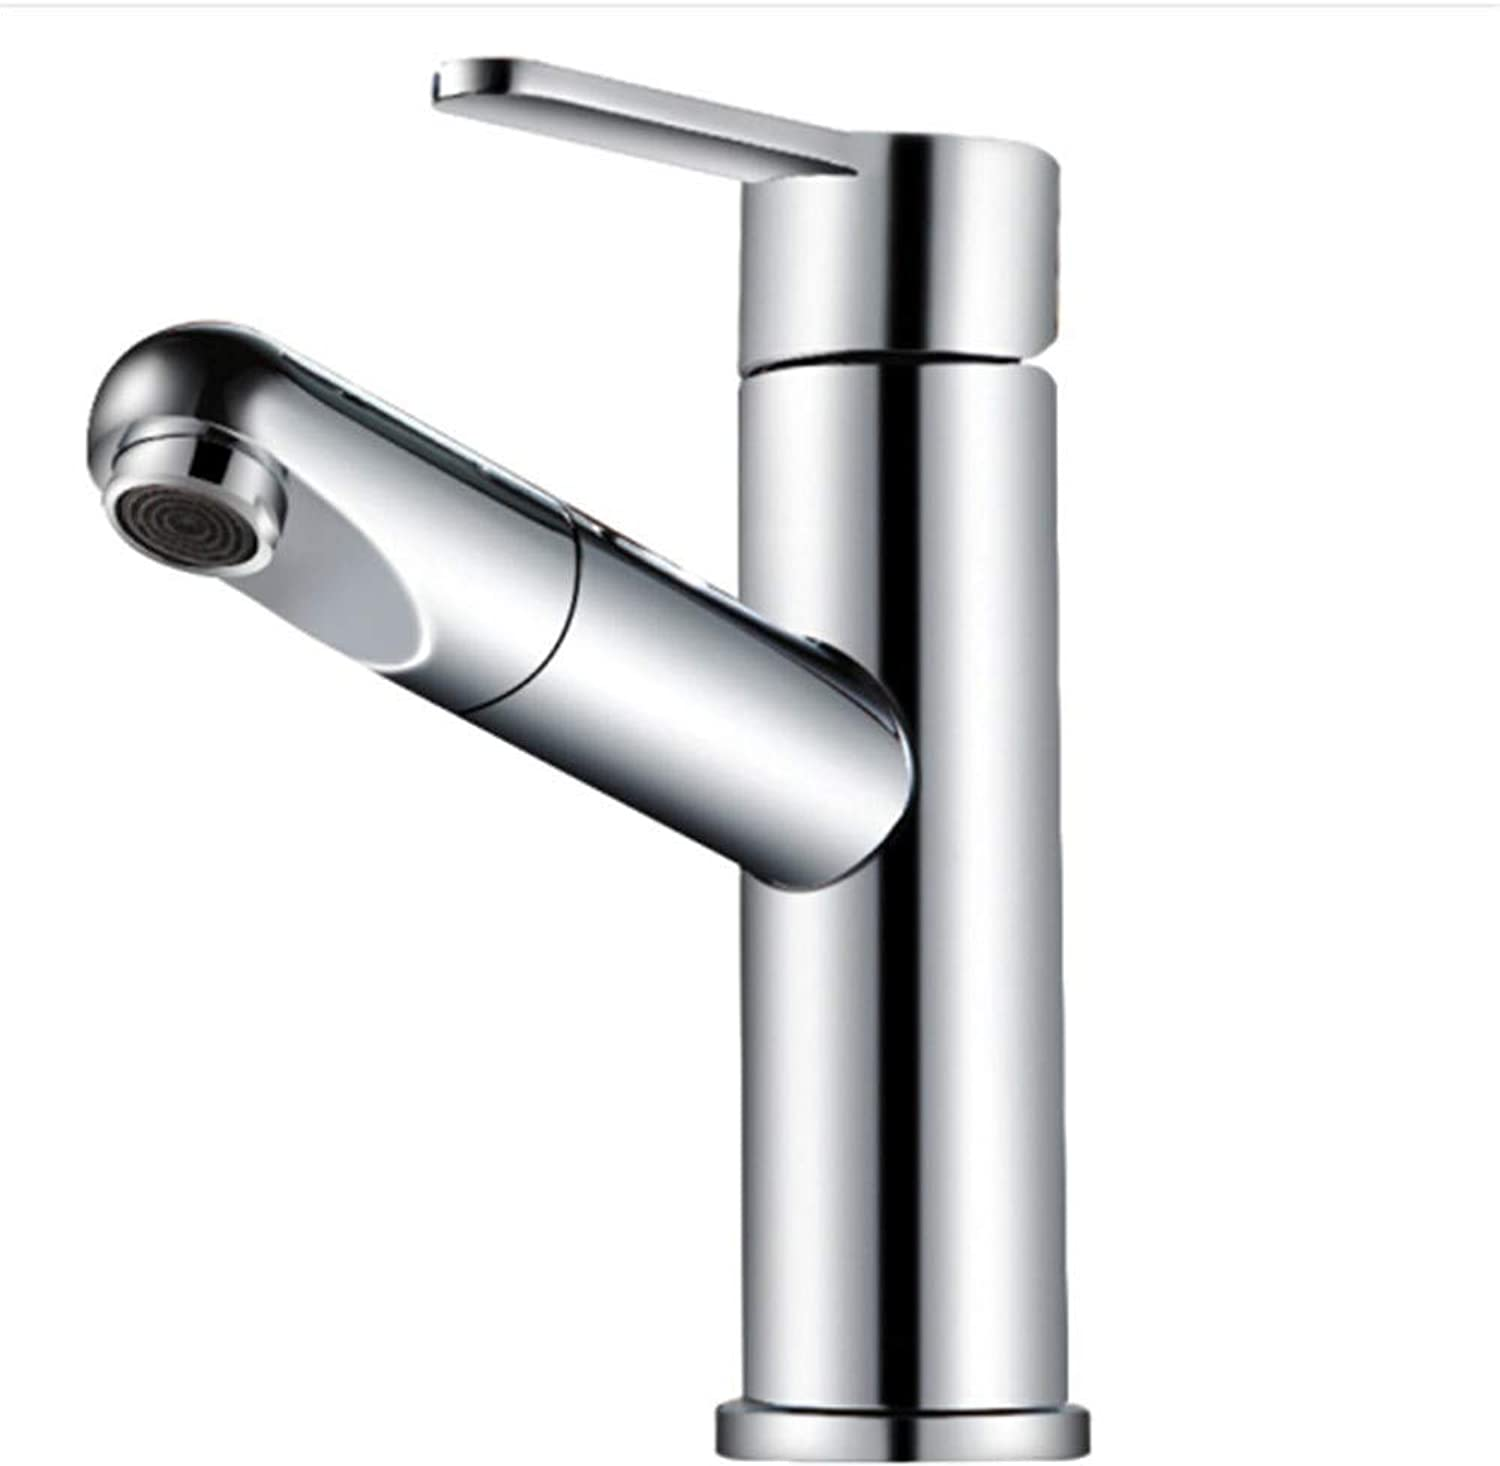 Water Tapdrinking Designer Archwater Faucet Washbasin Basin Cold and Hot Pull Faucet